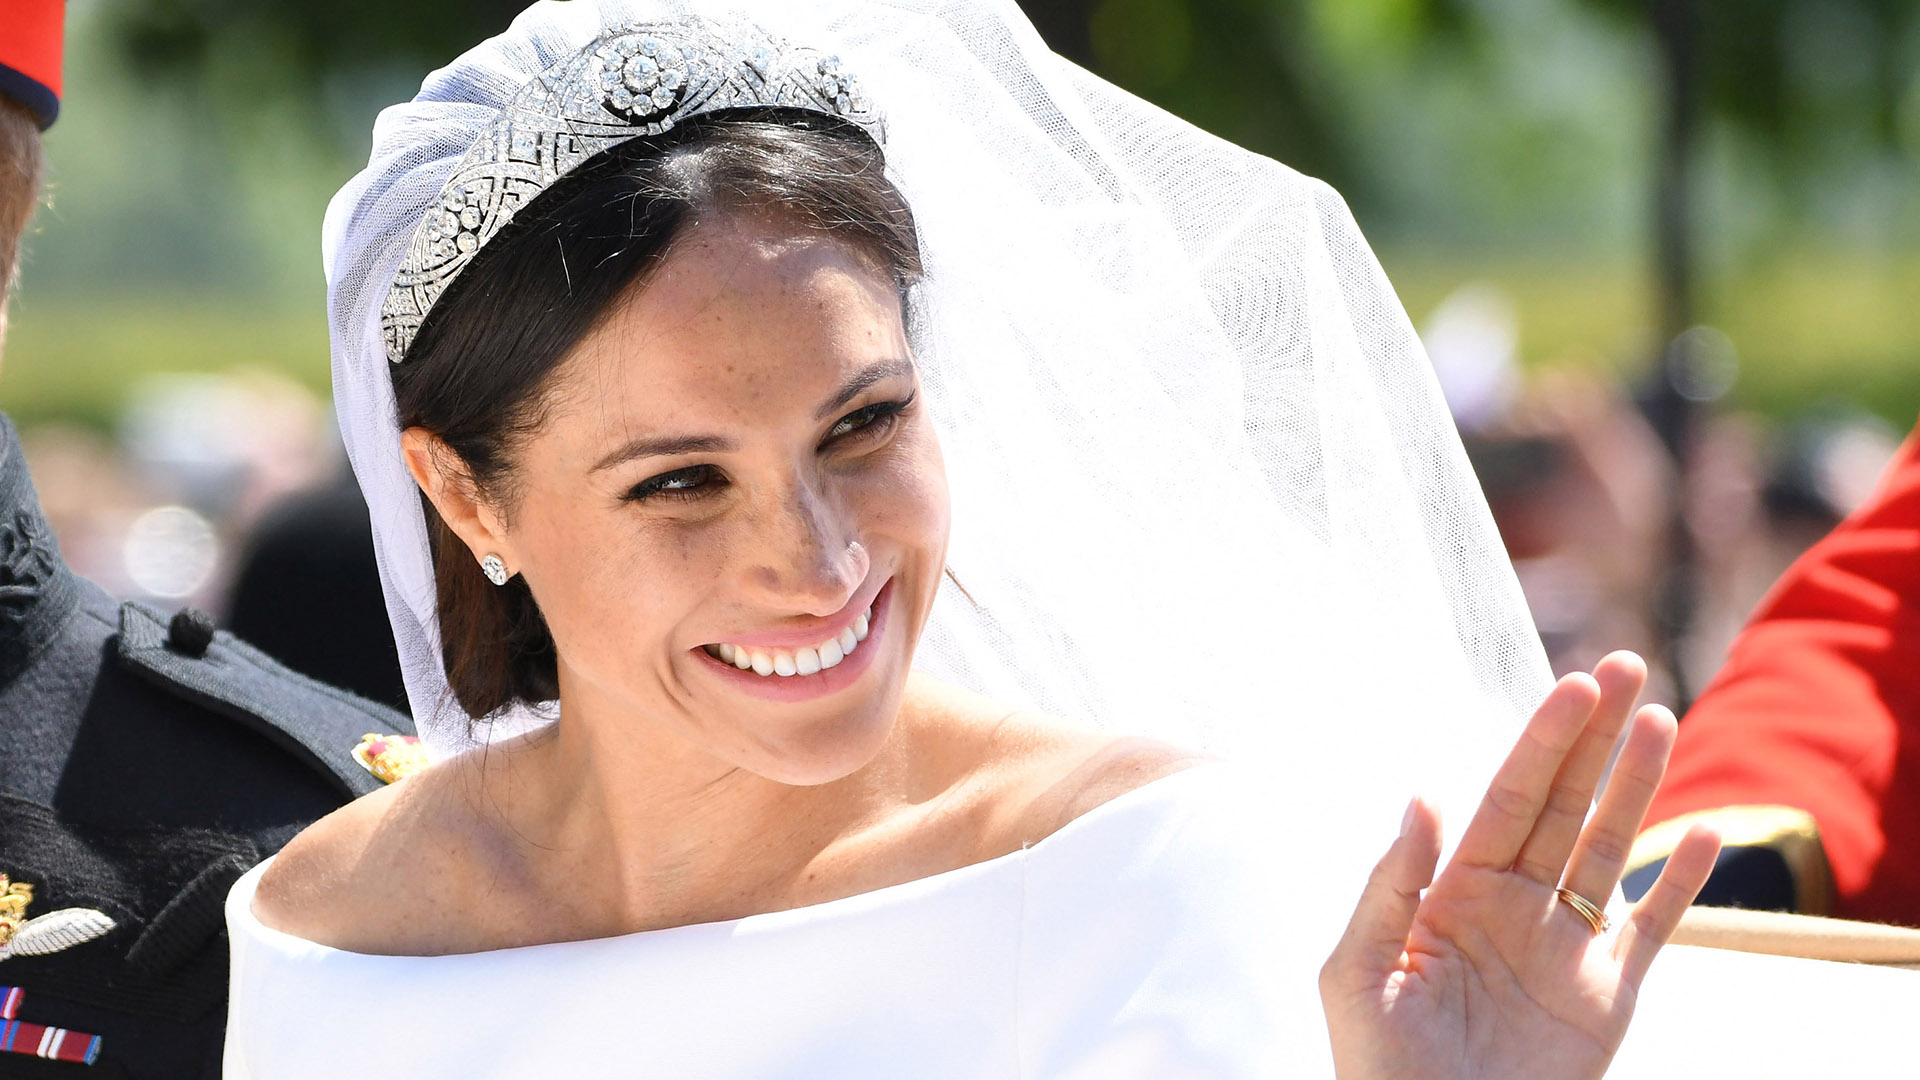 designer says meghan markle s wedding gown copied her design stylecaster https stylecaster com meghan markle designer accused of copying wedding dress design